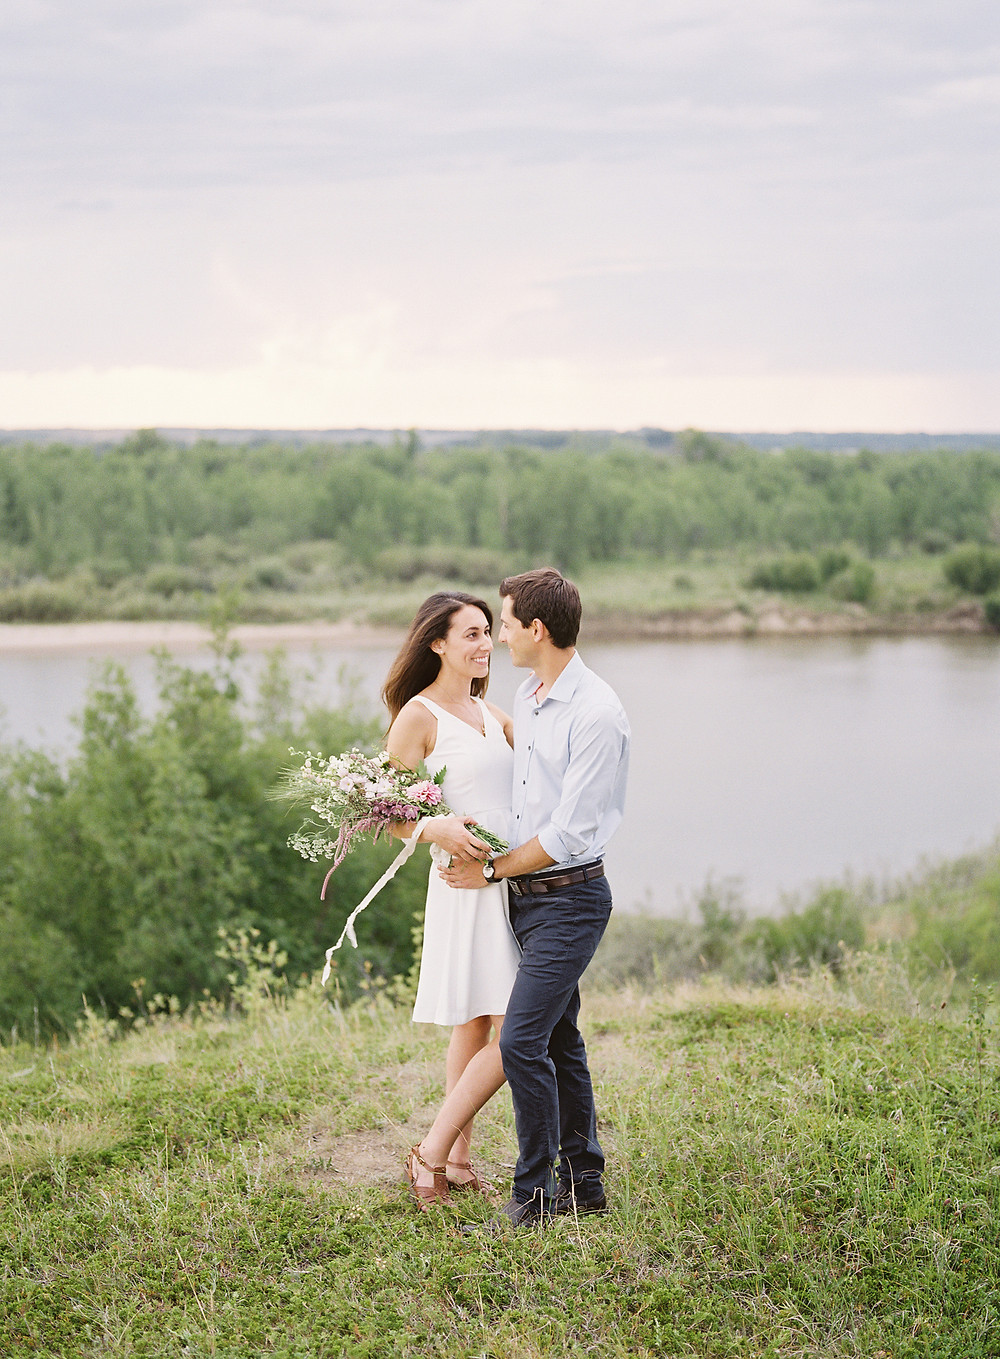 Saskatoon Engagement, Lisa Catherine Photography, Saskatoon Wedding Photographer